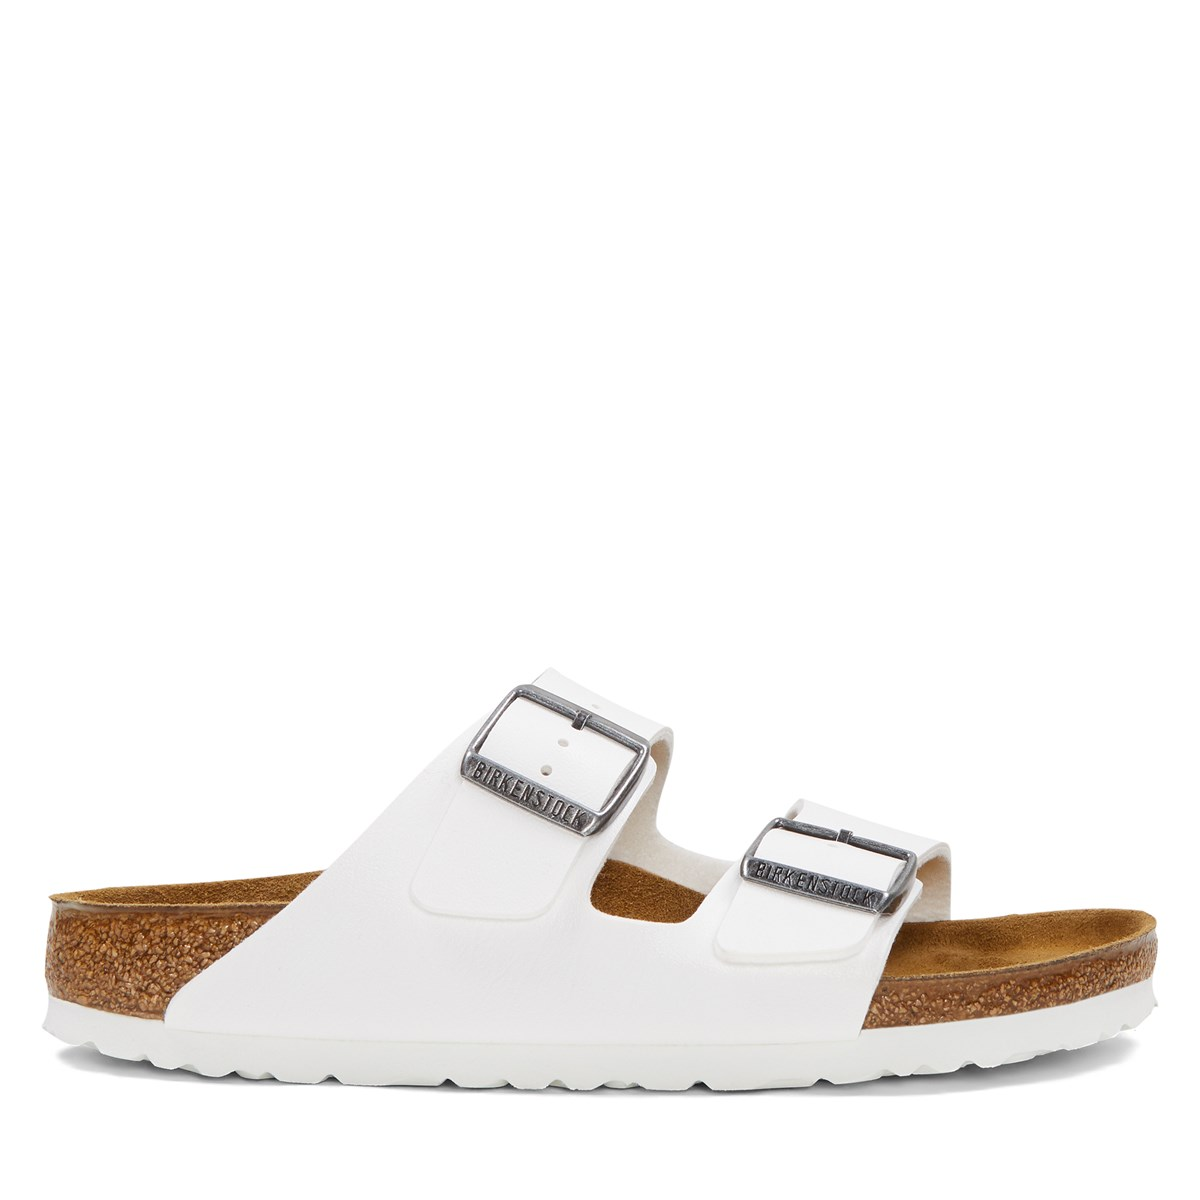 Women's Arizona Sandals in White